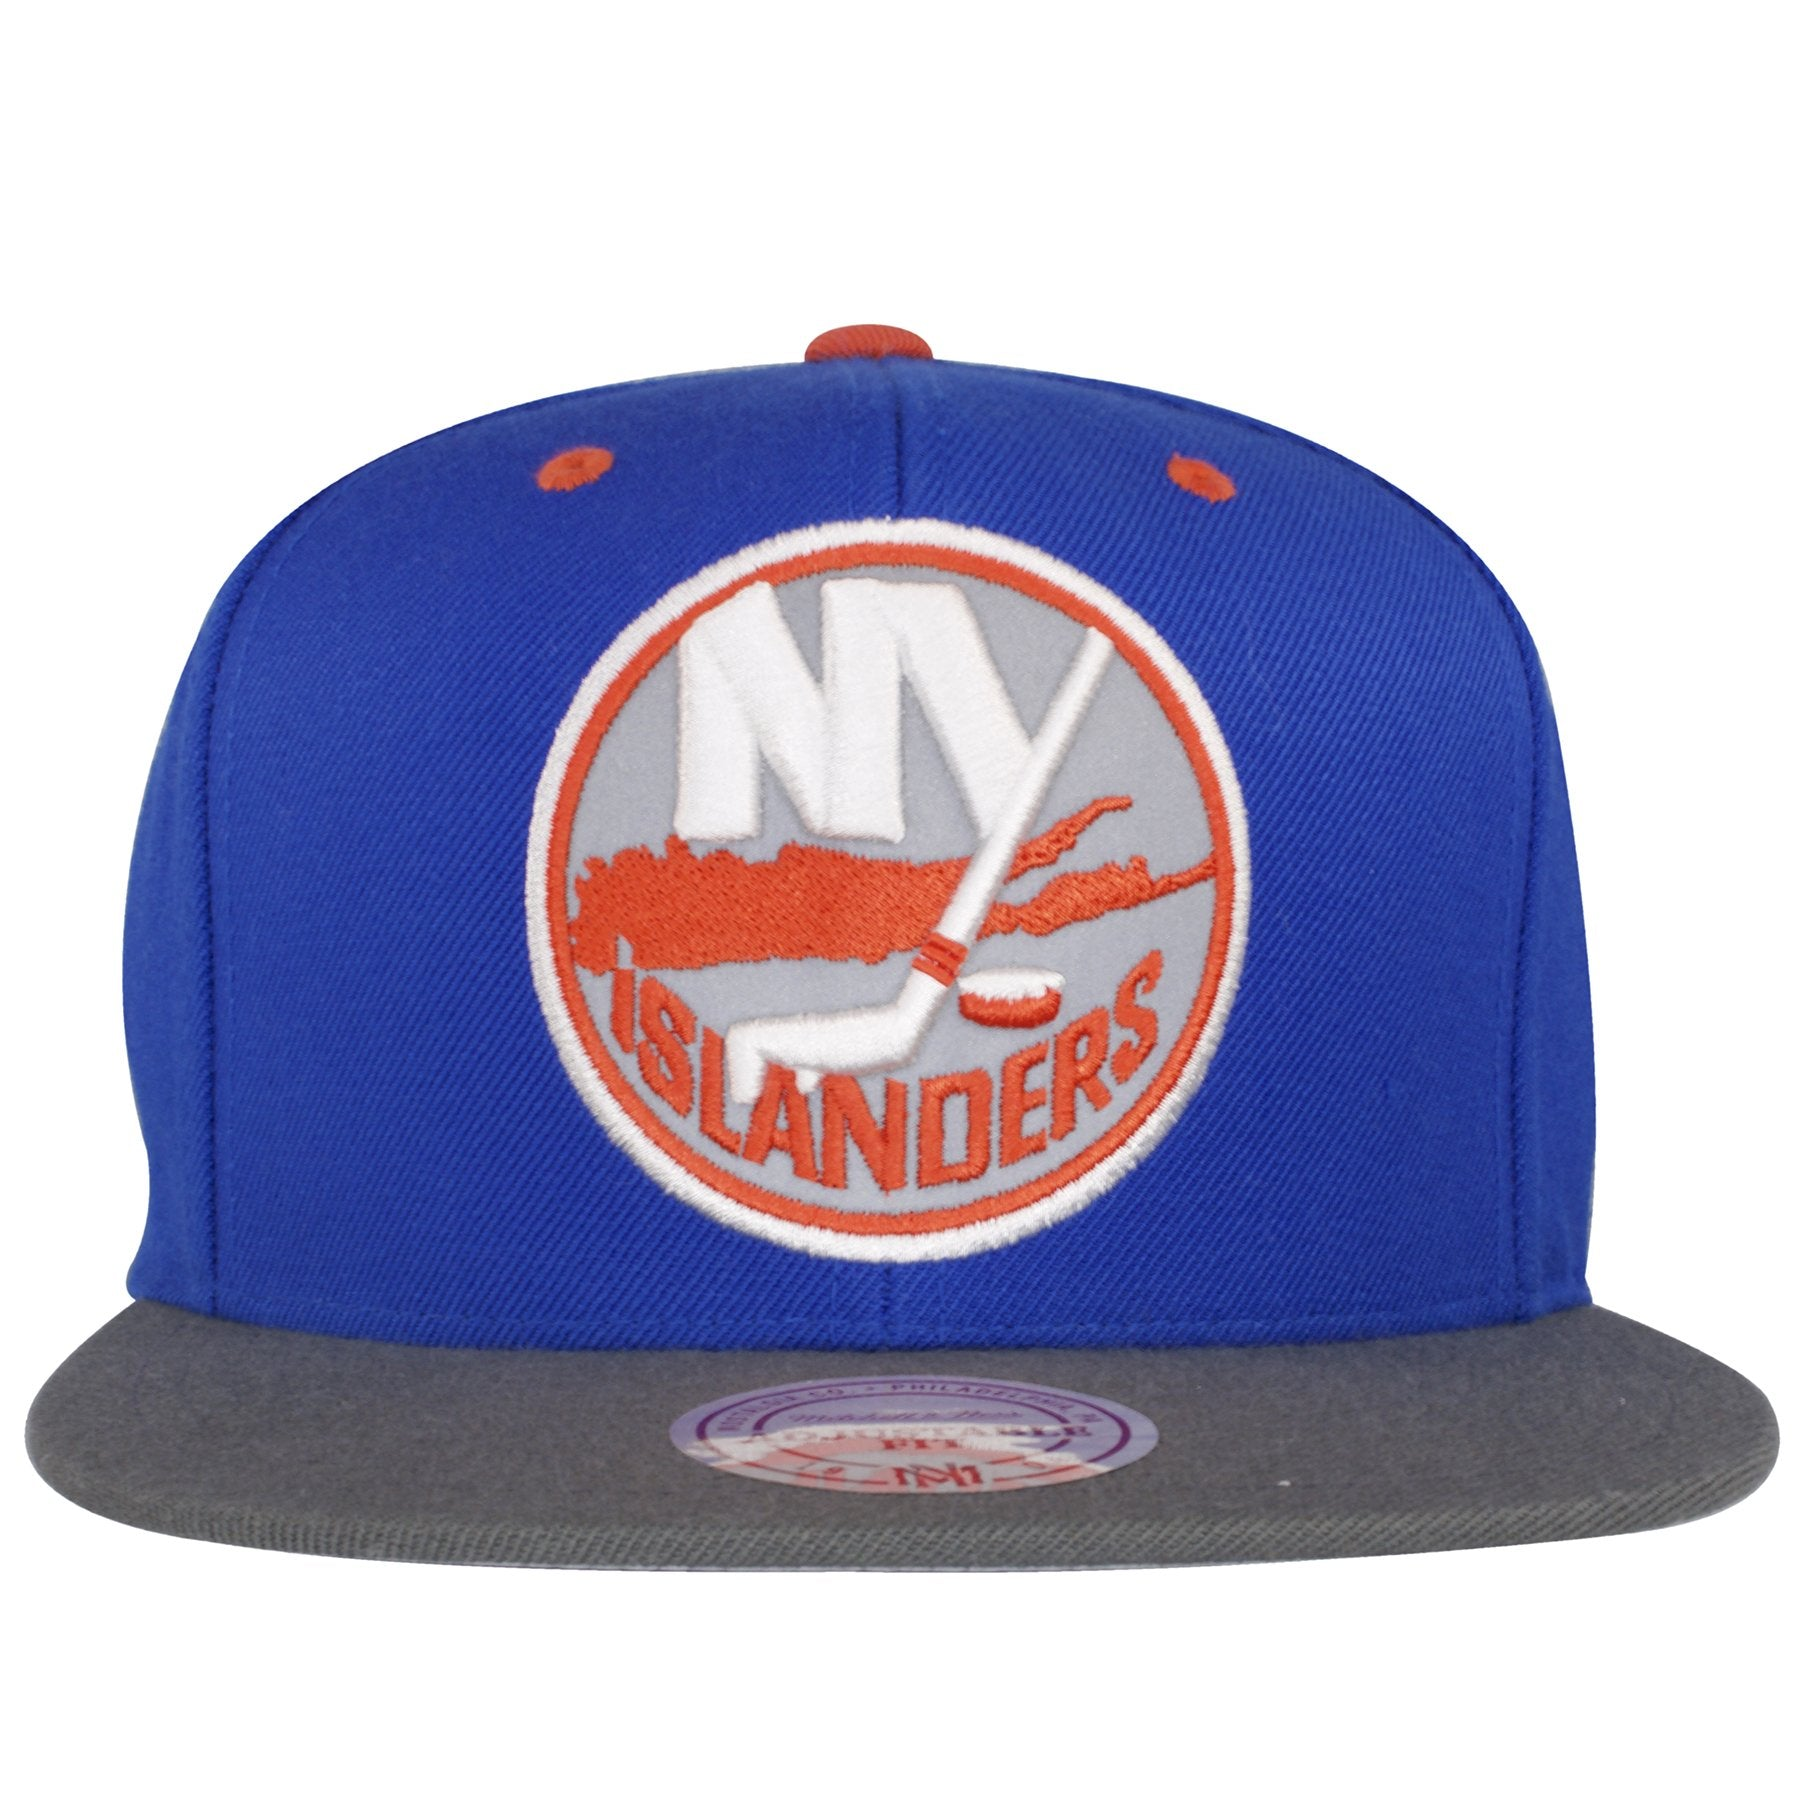 d3cc634254f Large New York Islander logo with reflective material on the front of this Islander  Snapback hat